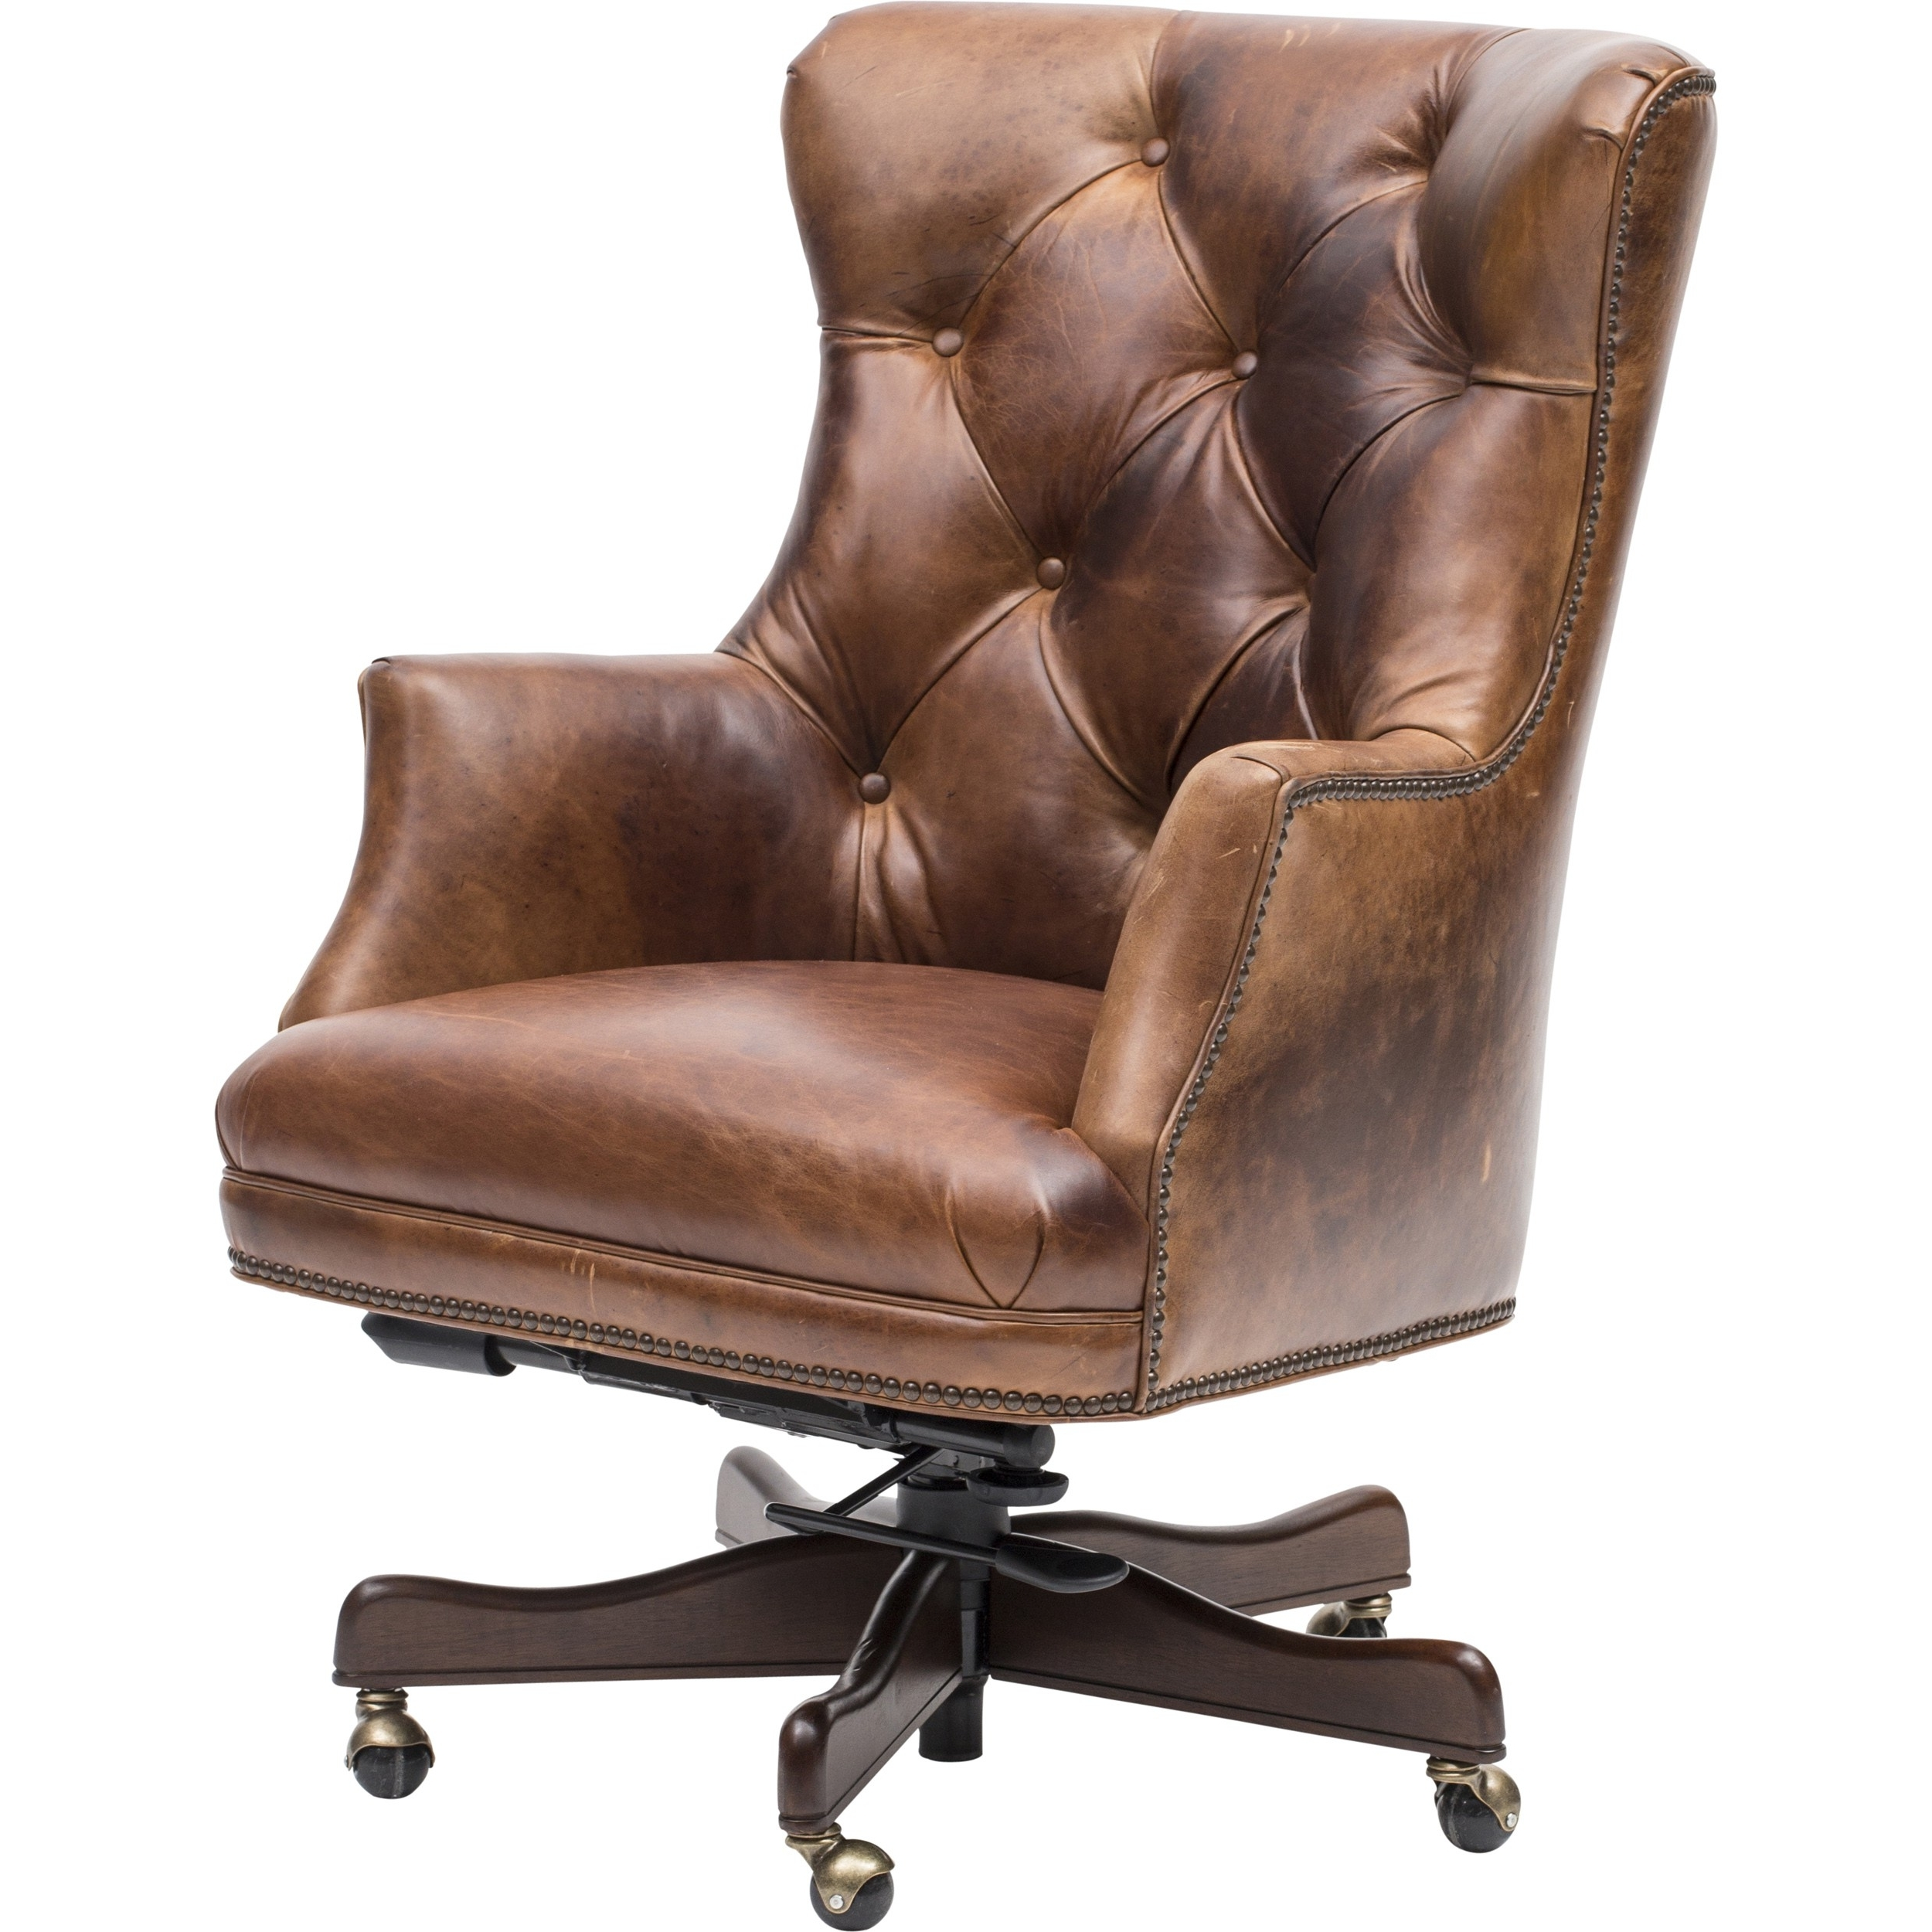 2018 Verona Executive Leather Office Chairs In Chair : High Back Executive Leather Office Chair Verona Brown (View 7 of 20)